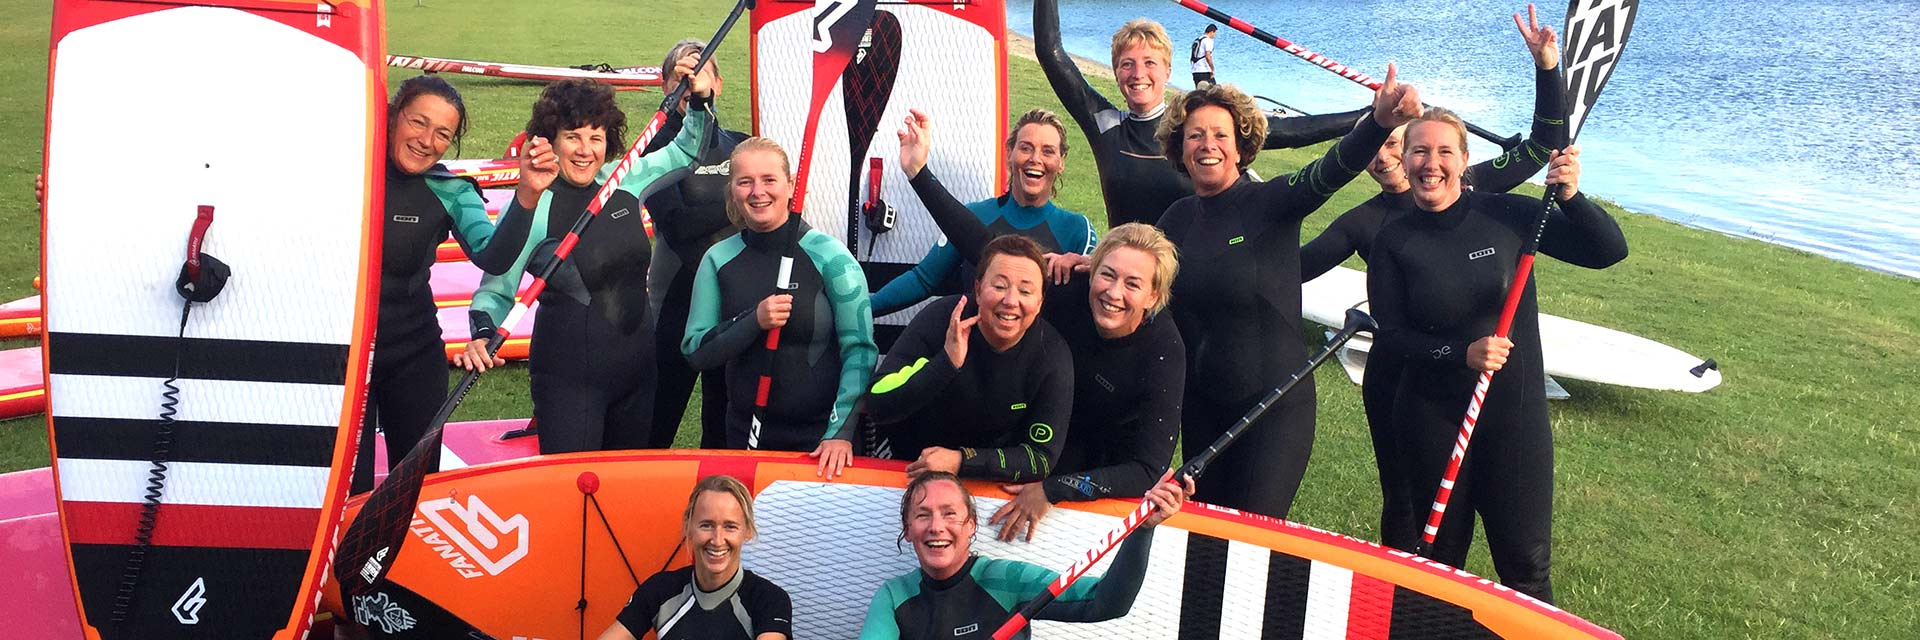 SUP-Cursus-happy-people